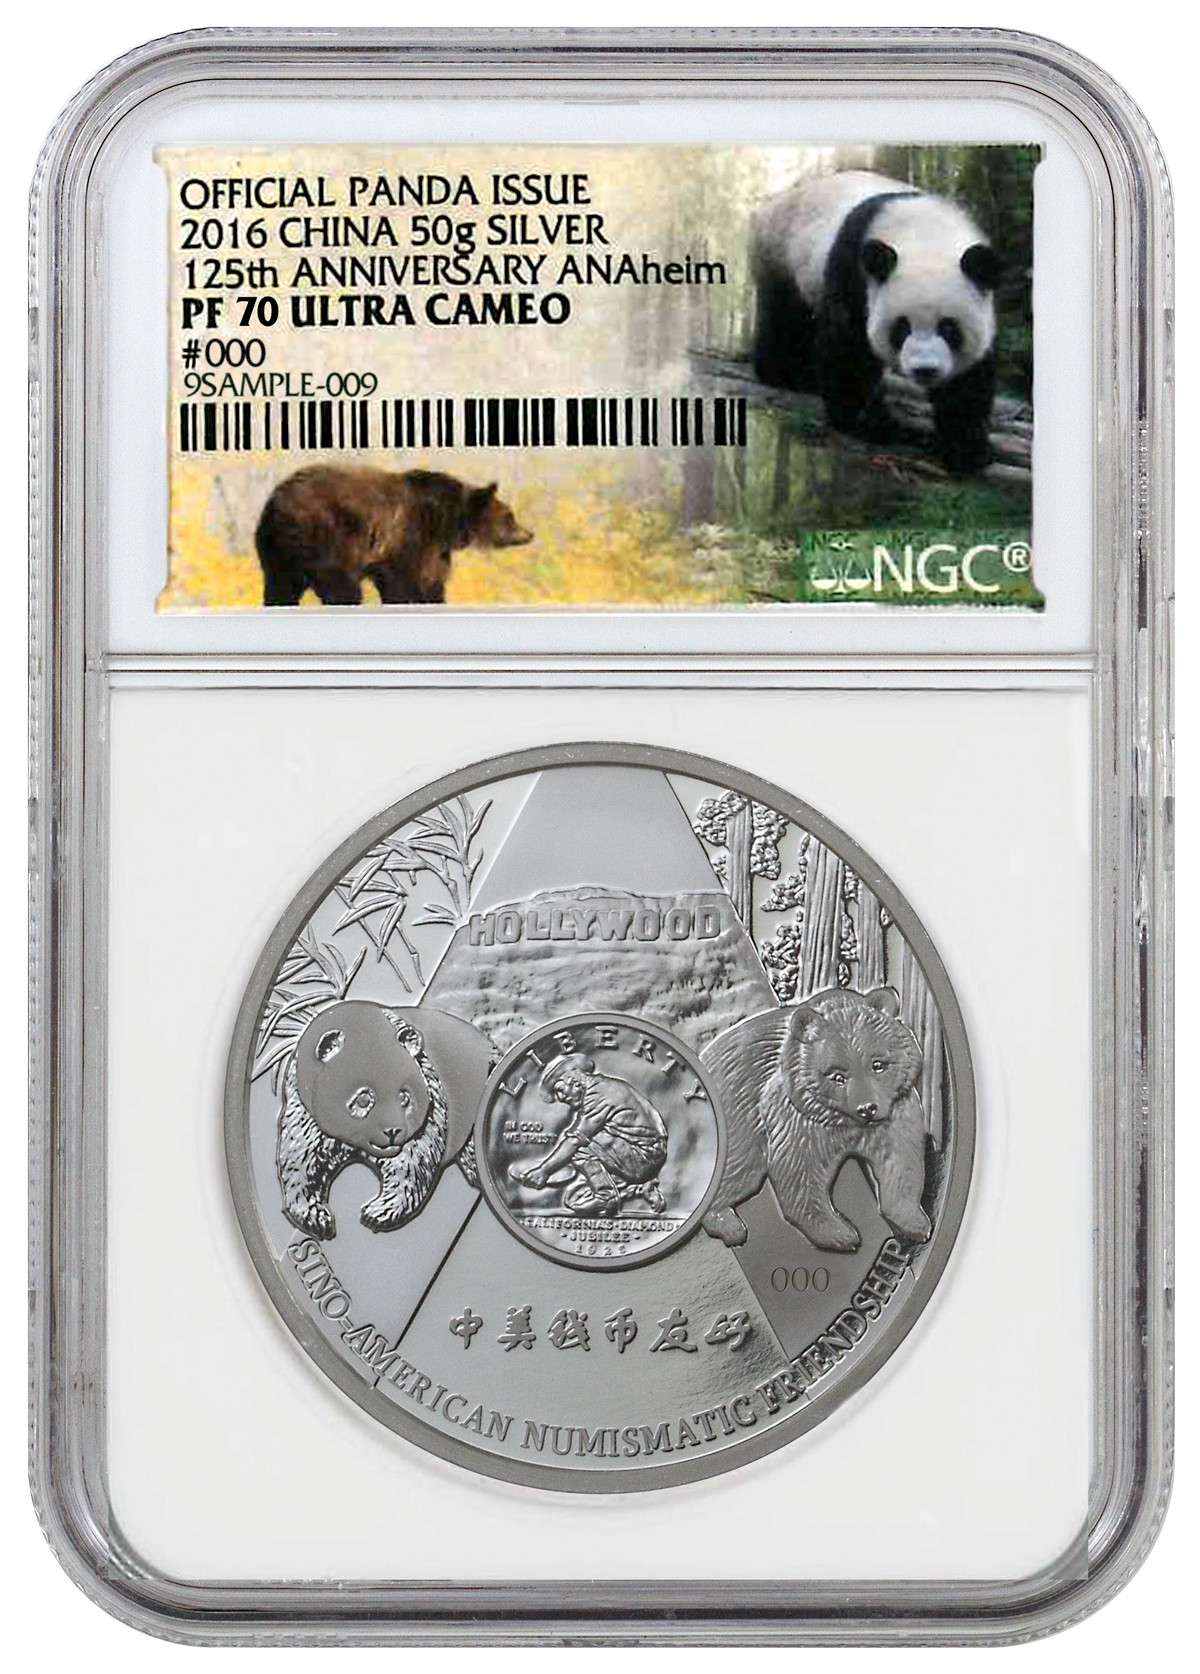 2016 China Anaheim ANA World's Fair of Money Silver Panda 50 g Silver Proof Medal NGC PF70 UC (Exclusive ANA Panda Label)